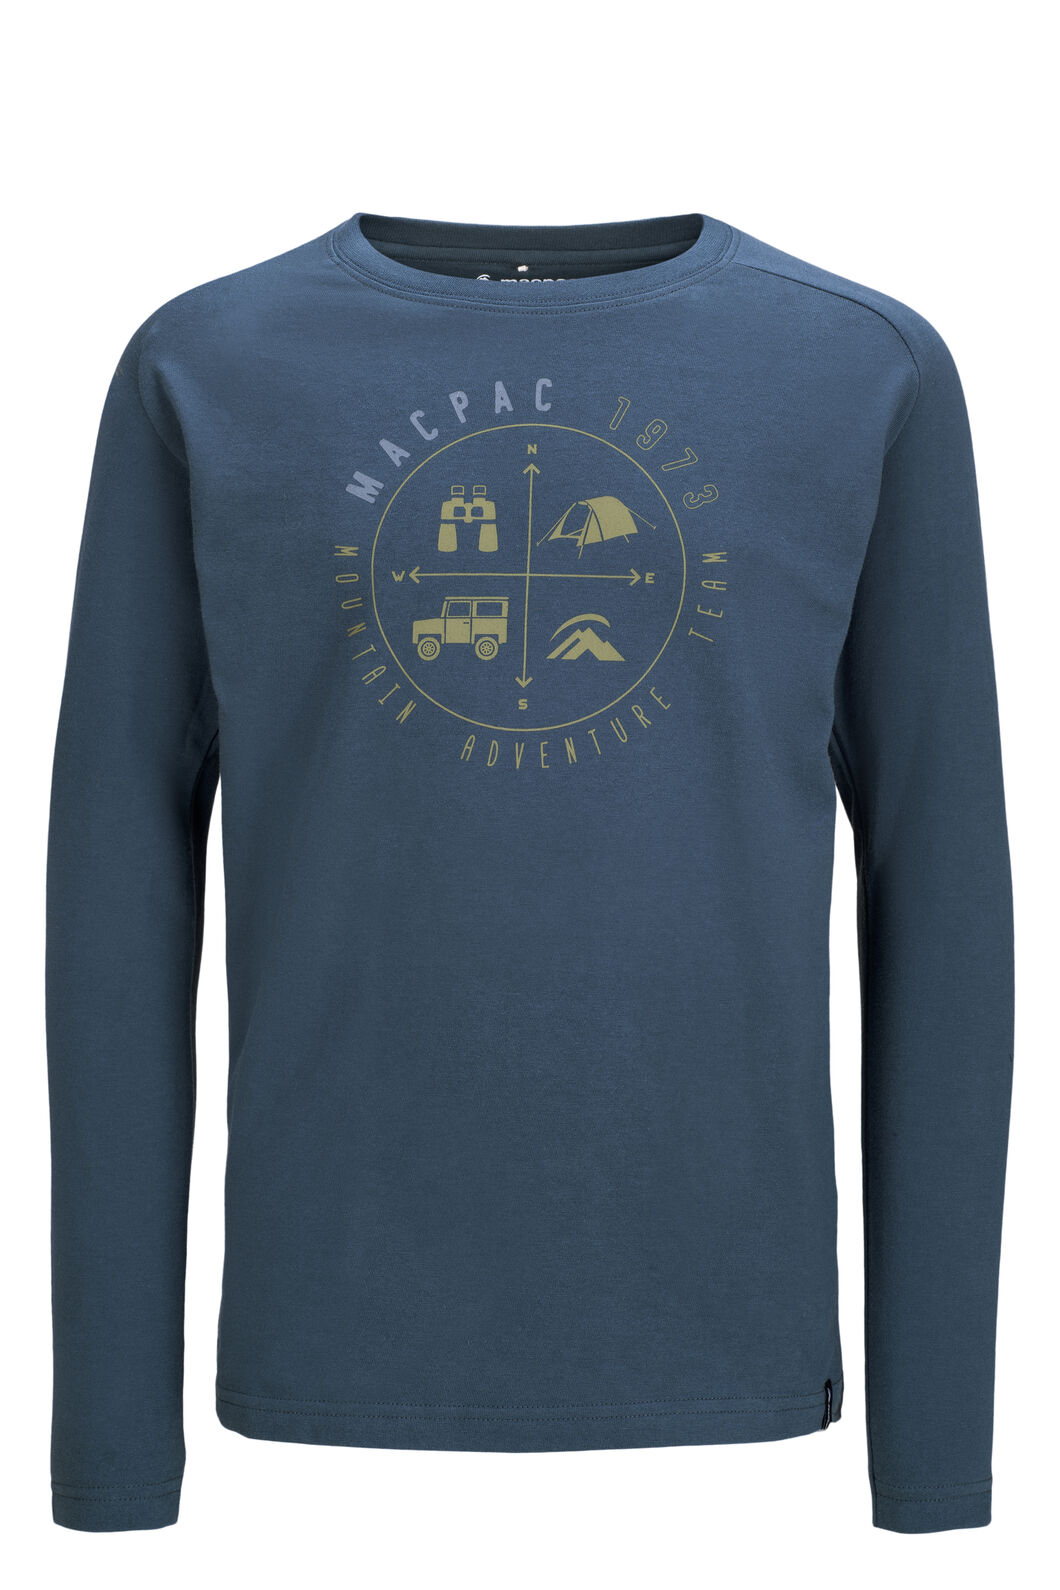 Macpac Compass Fairtrade Organic Cotton Long Sleeve Tee — Kids', Orion Blue, hi-res